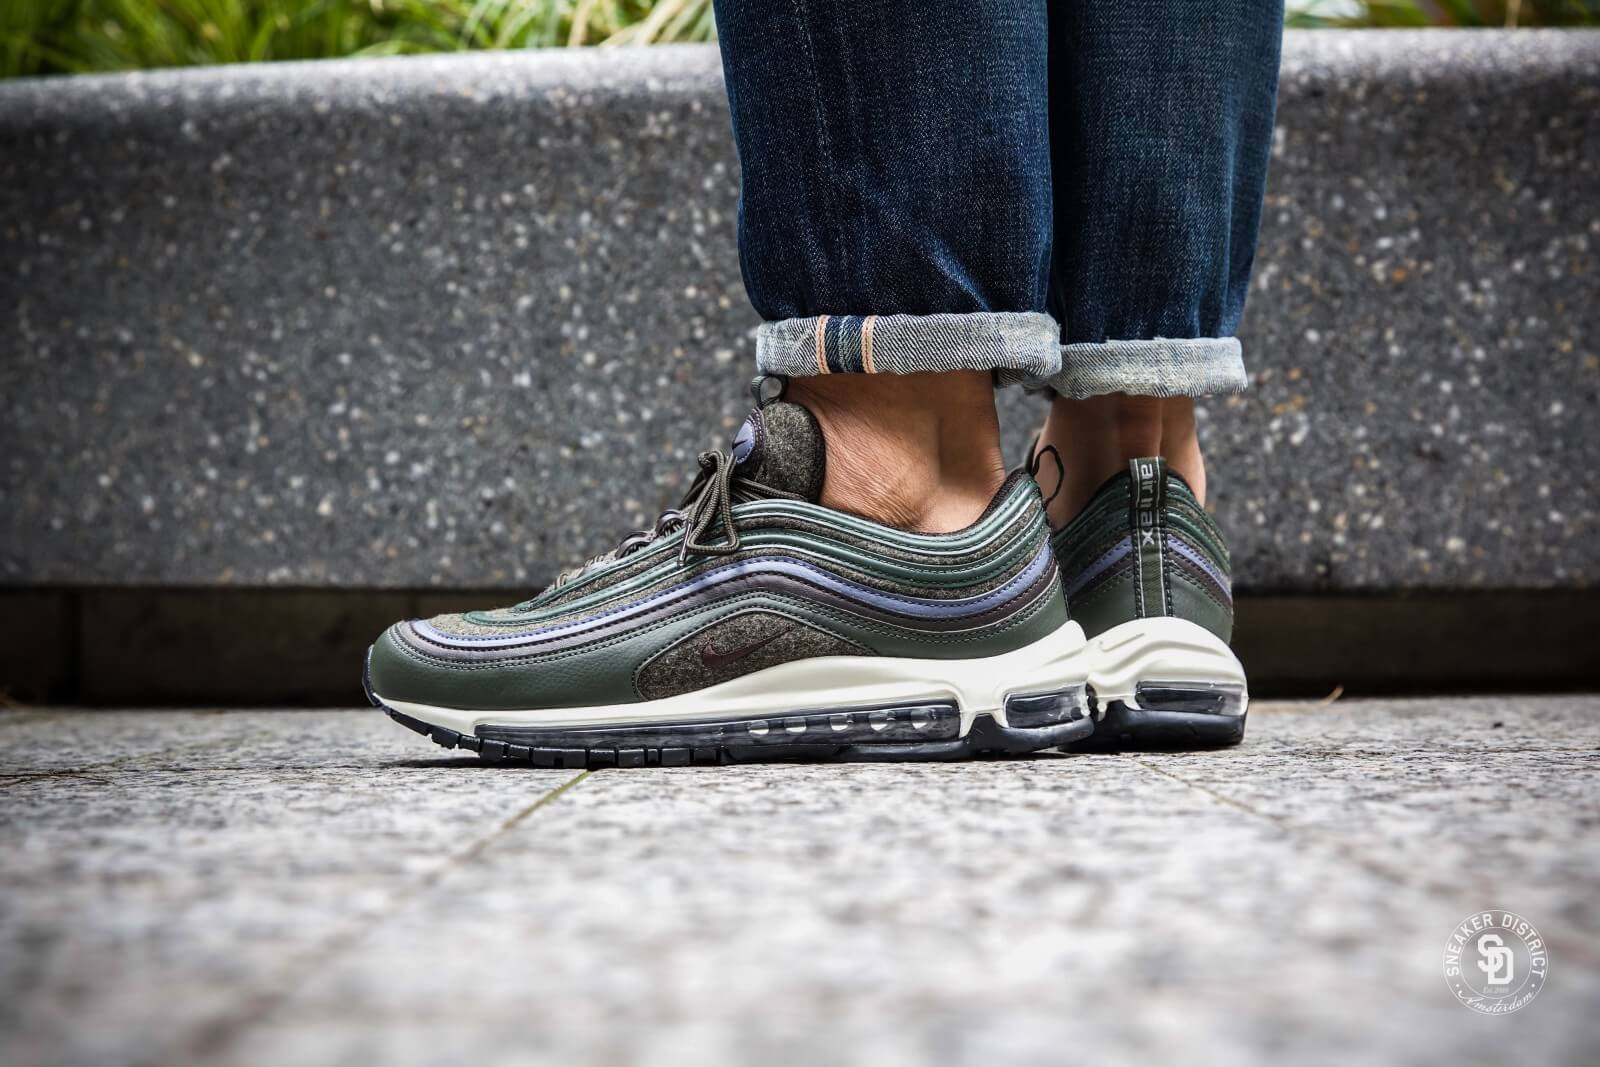 Nike Air Max 97 Premium Sequoia/Velvet Brown